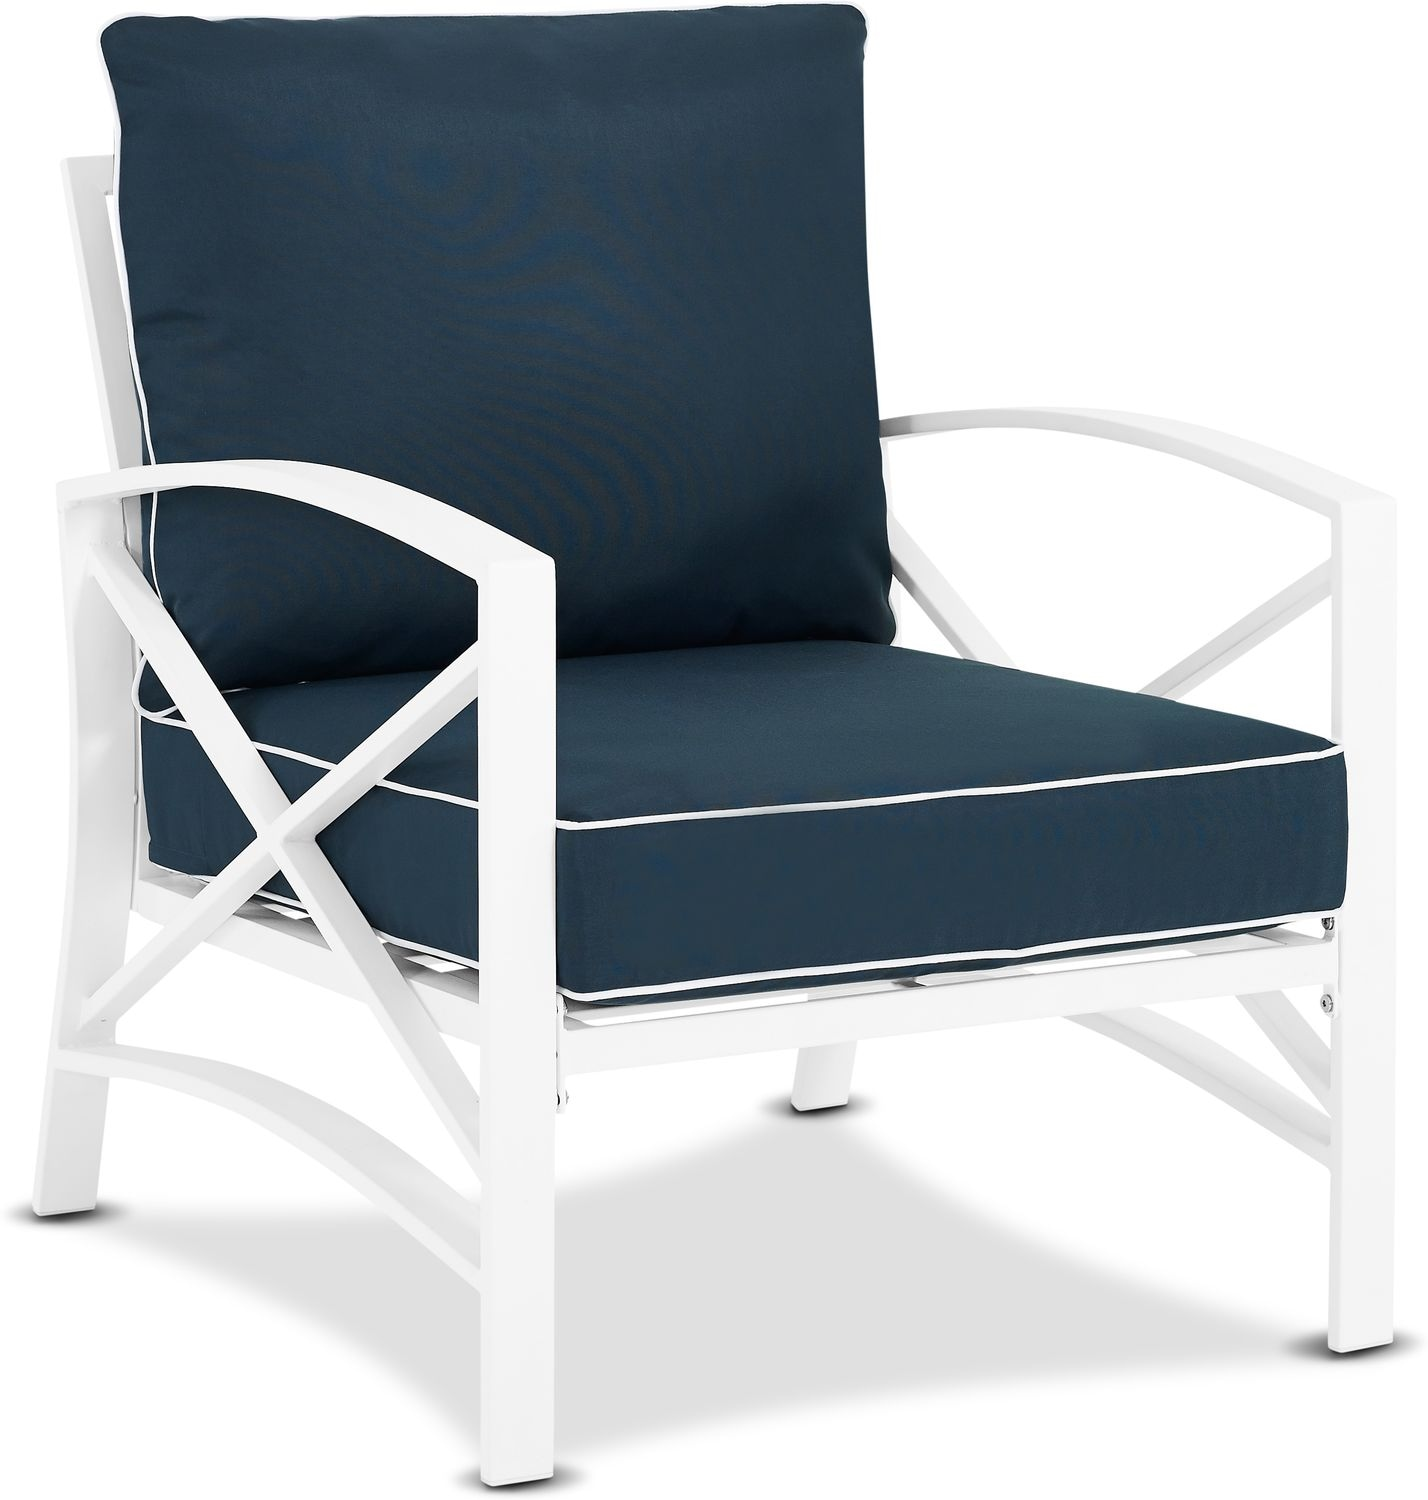 Outdoor Furniture - Clarion Outdoor Chair